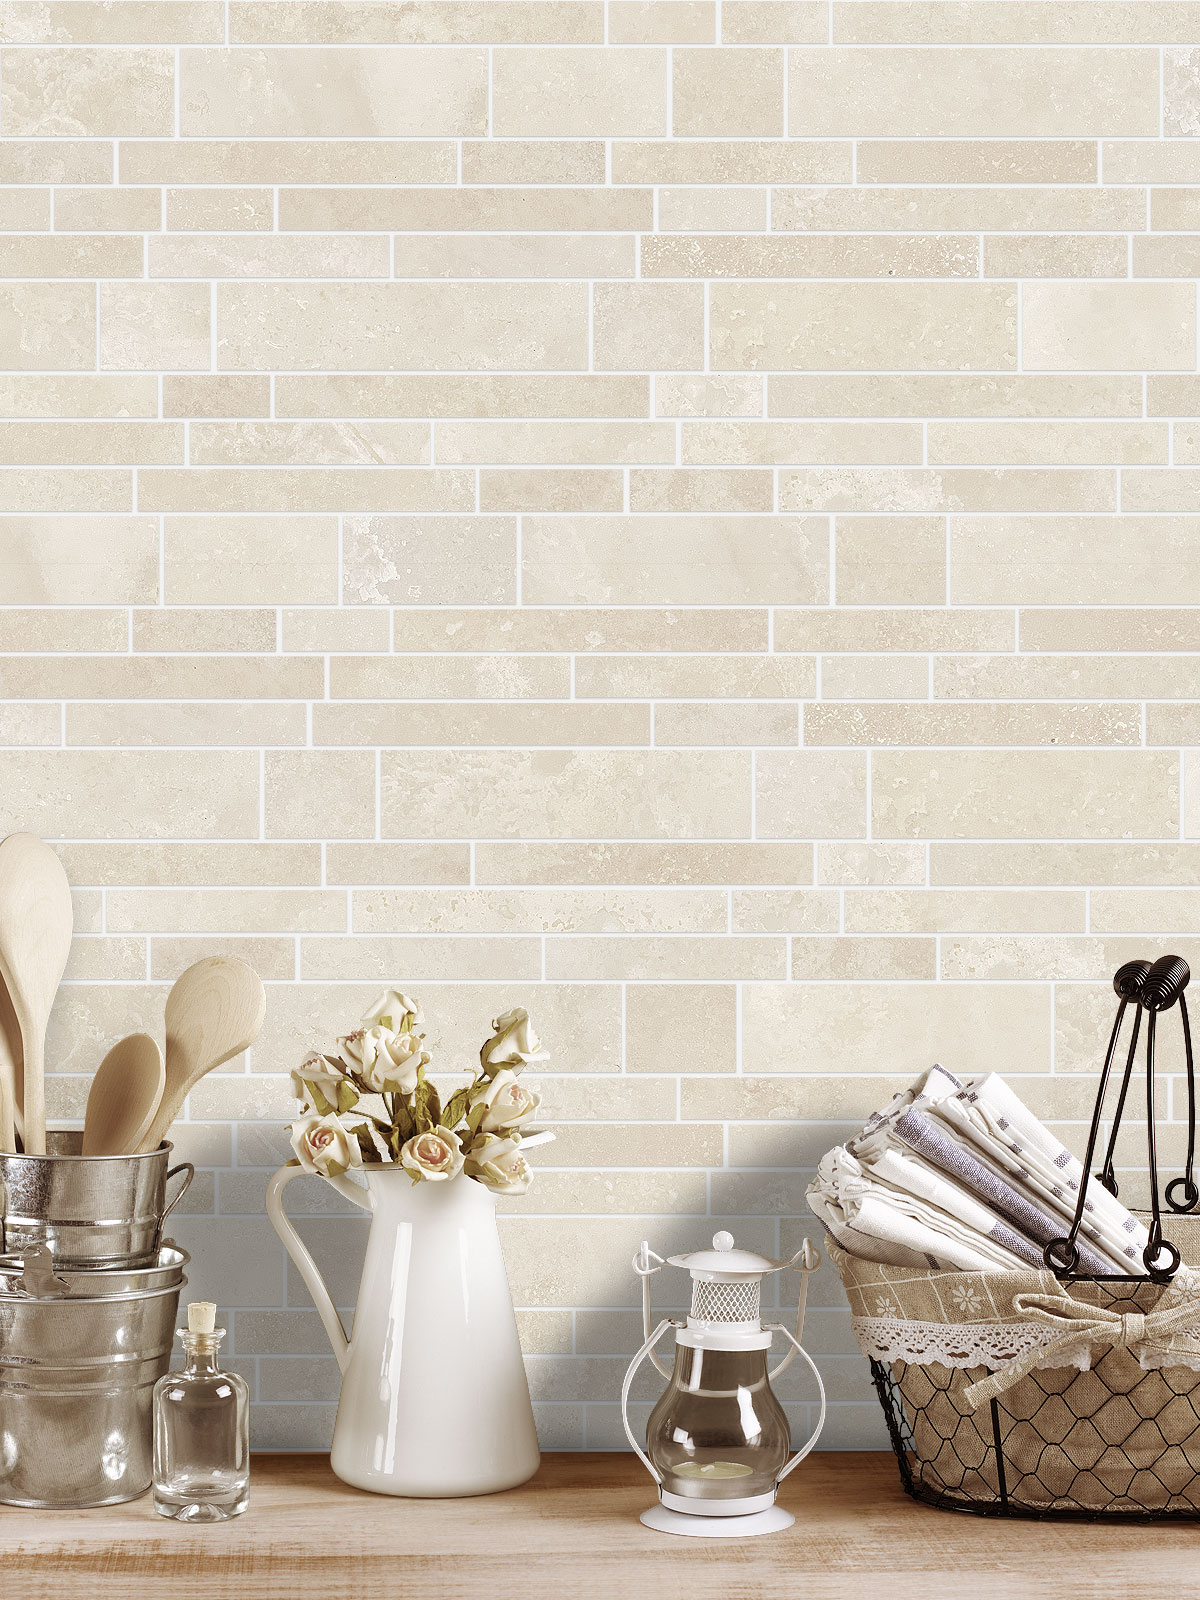 - 55+ Beige Backsplash Ideas - ( Don't Mistake Beige For Being Boring )